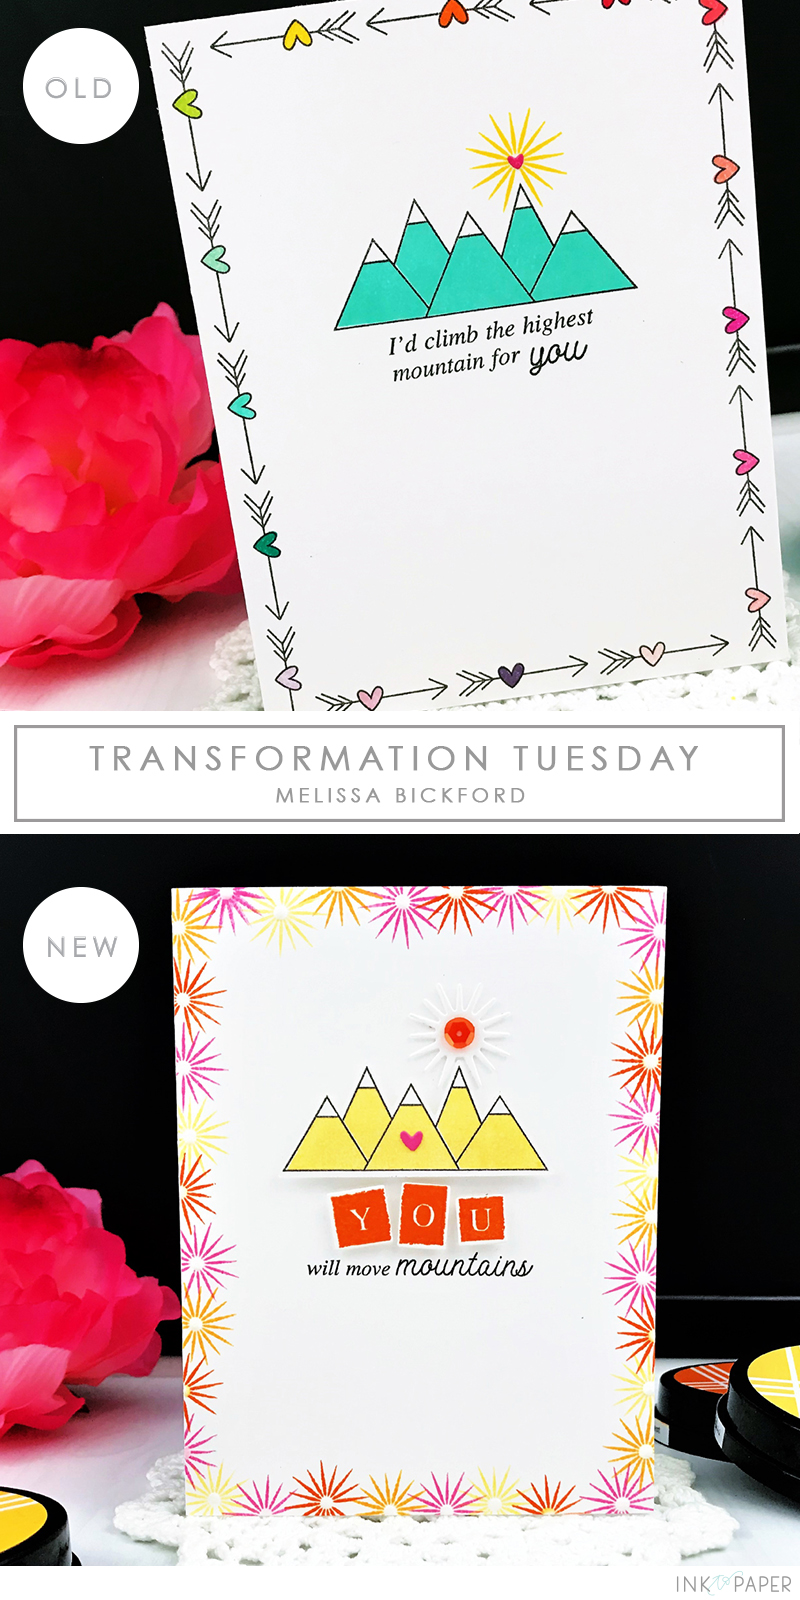 Ink to Paper - Melissa Bickford - May 2019 - Transformation Tuesday - Simply Sweet: You - Graduation Card